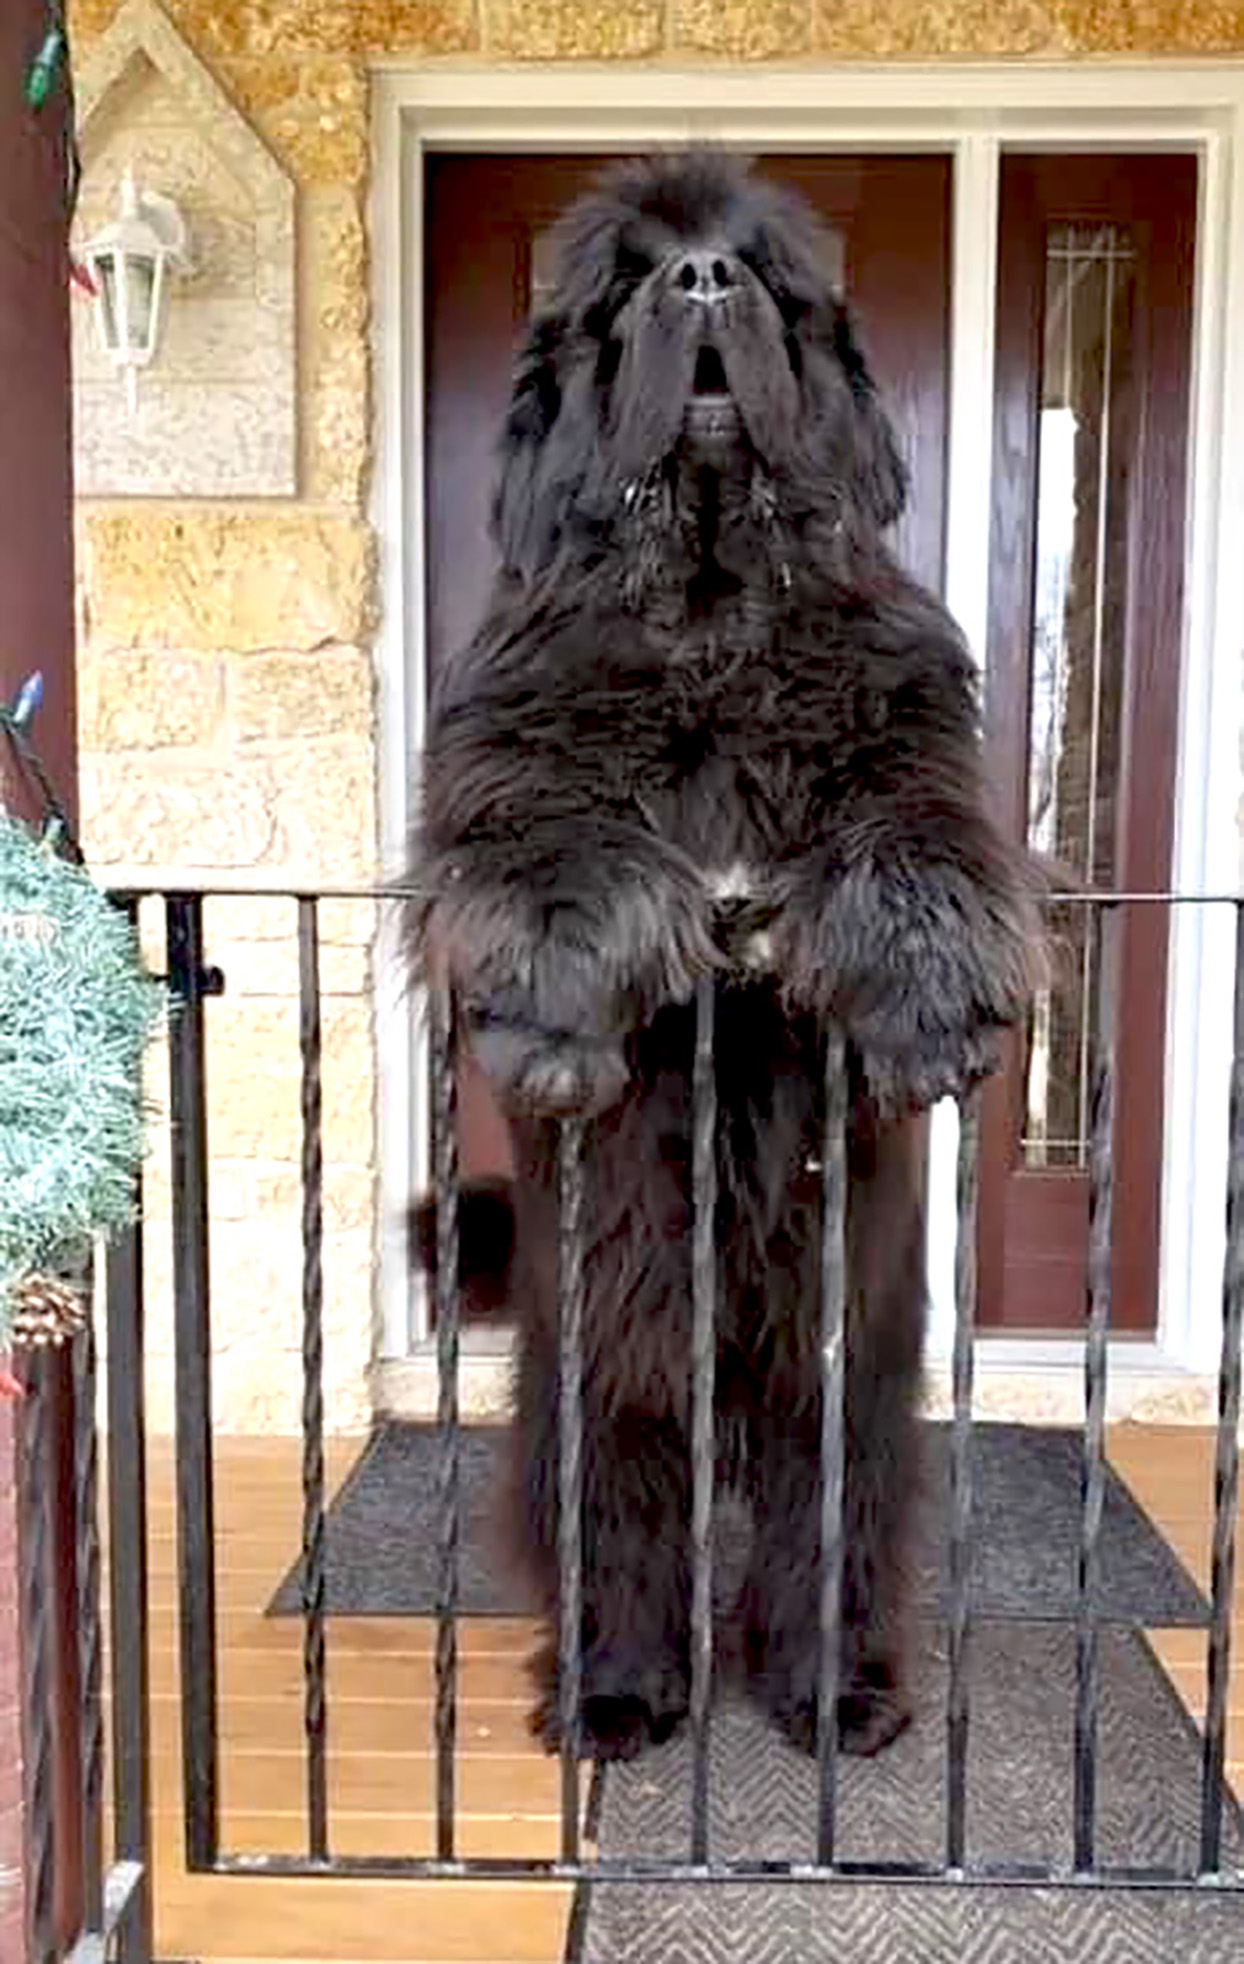 Newfoundland stands on hind legs in front of house